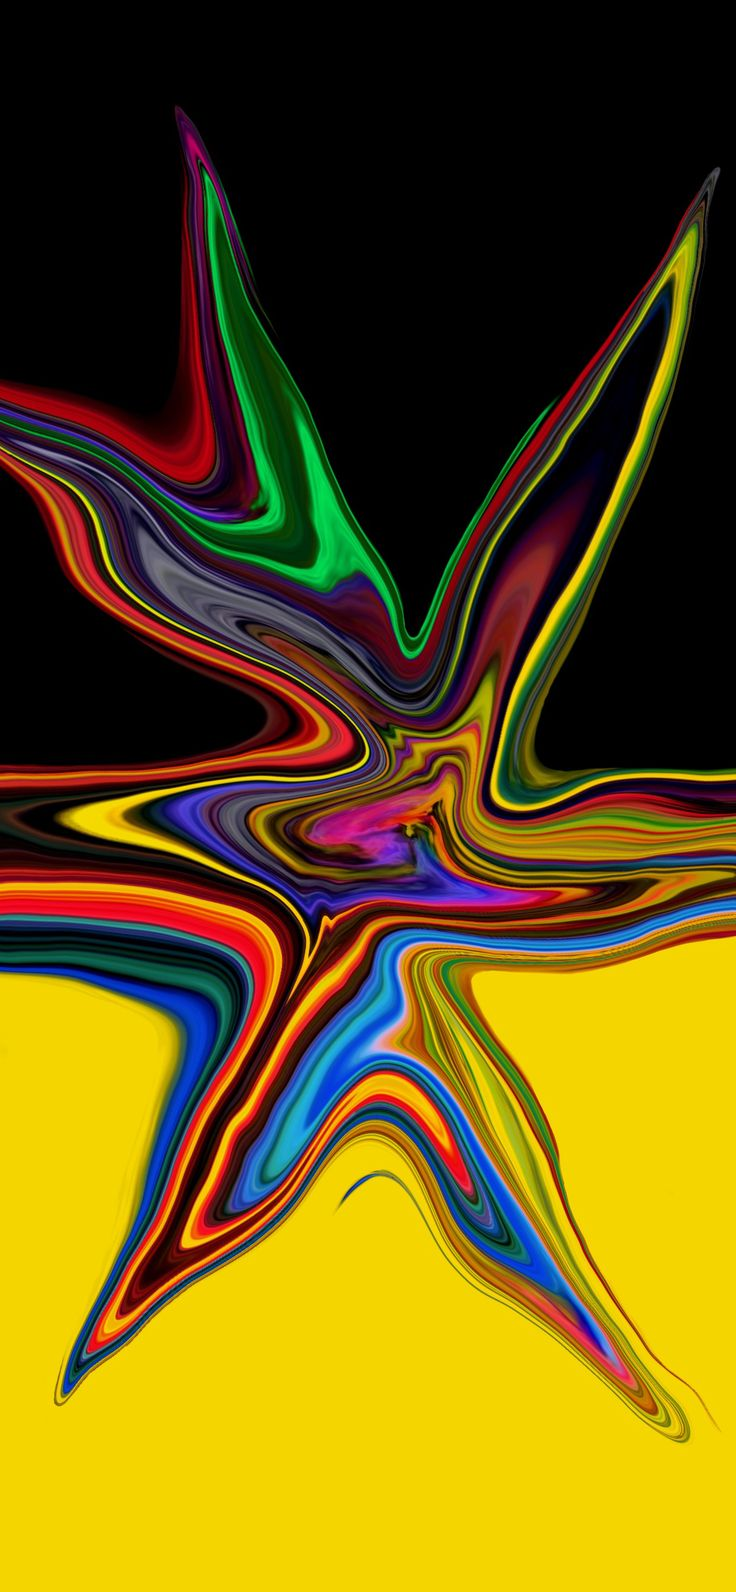 Abstract Wallpaper Designed By ©Hotspot4U | Abstract HD Wallpapers 2